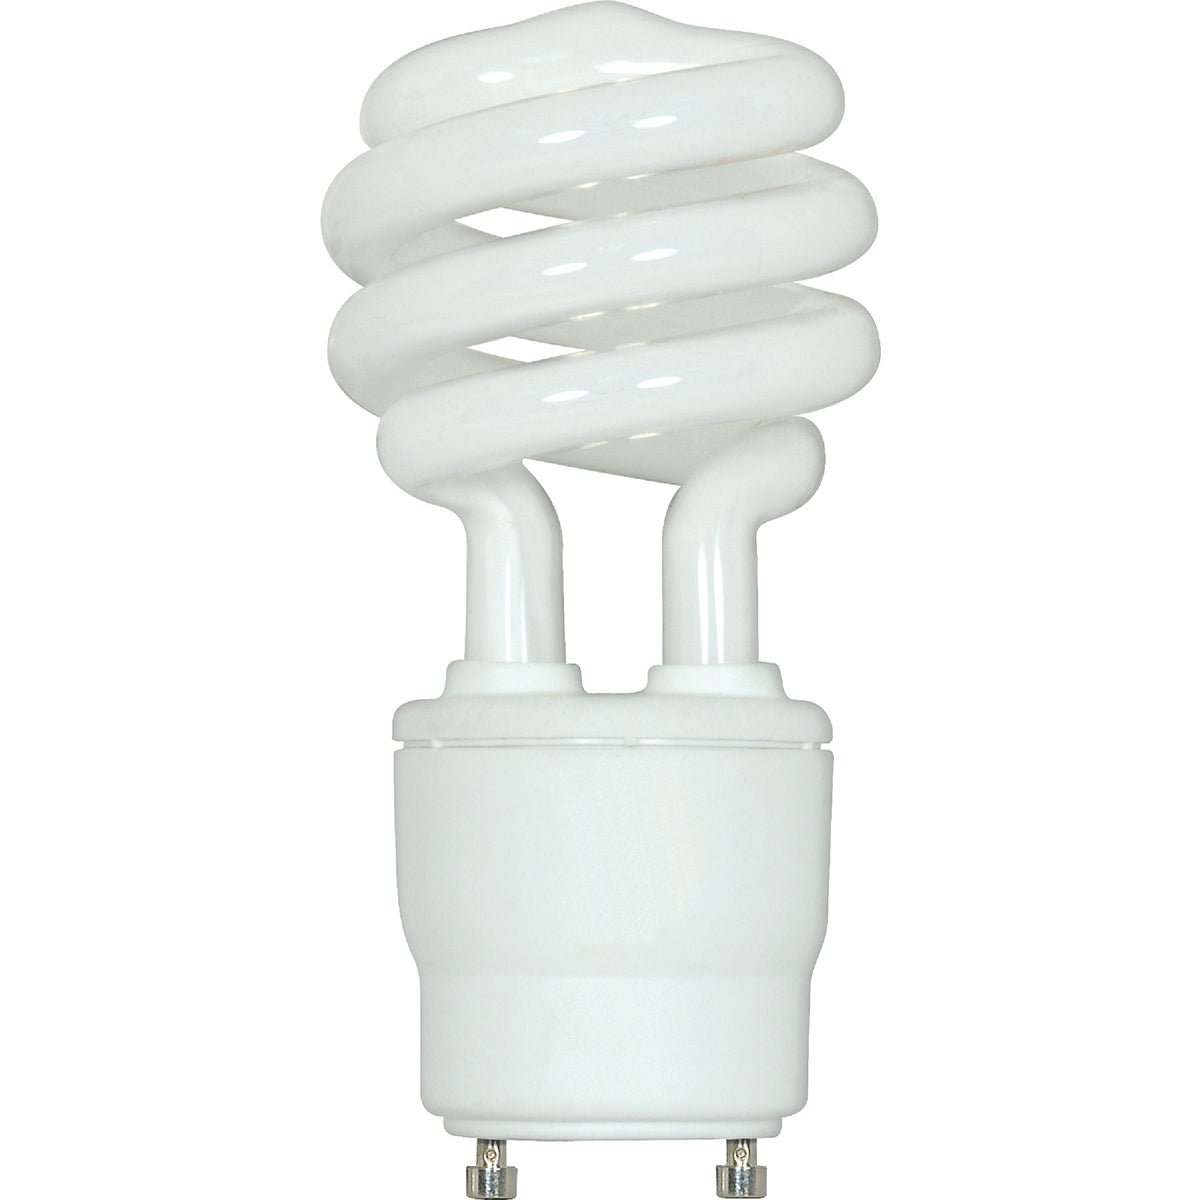 15W GU24 CFL BULB - 75367 by G E Lighting